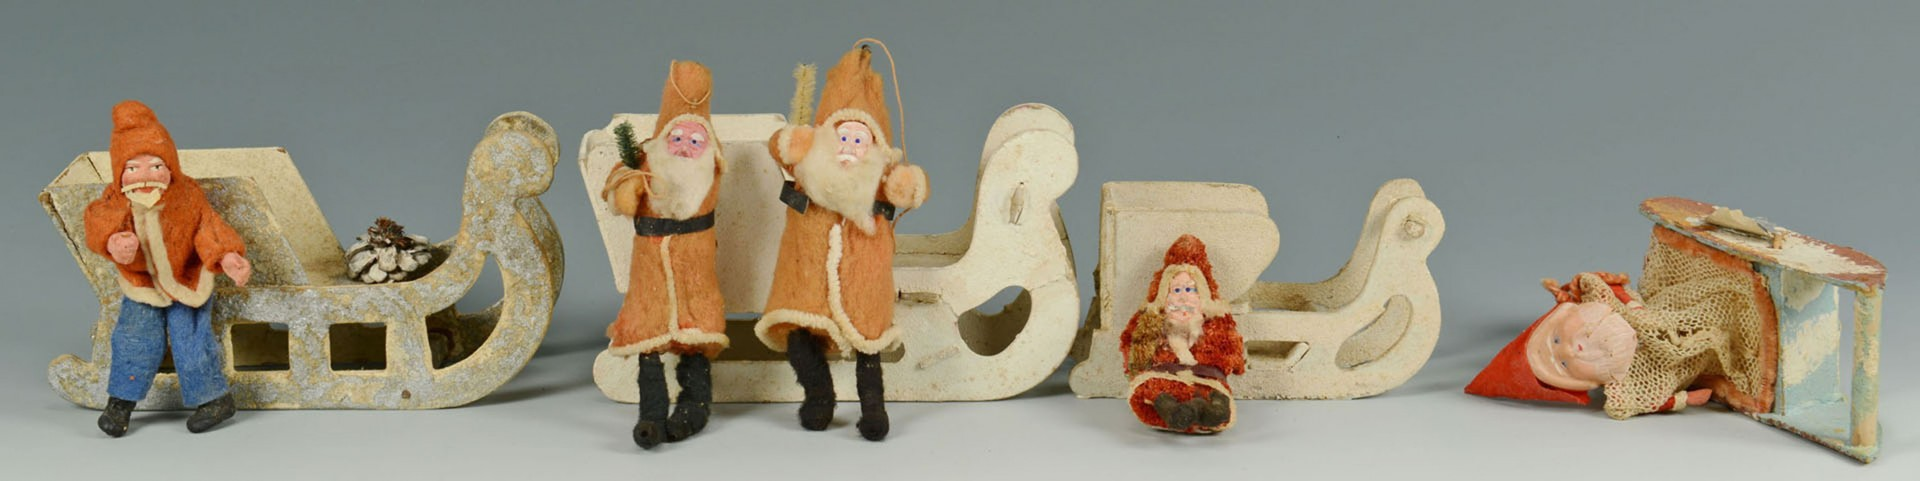 Lot 2872312: Grouping of early Santa Claus figures with sleighs